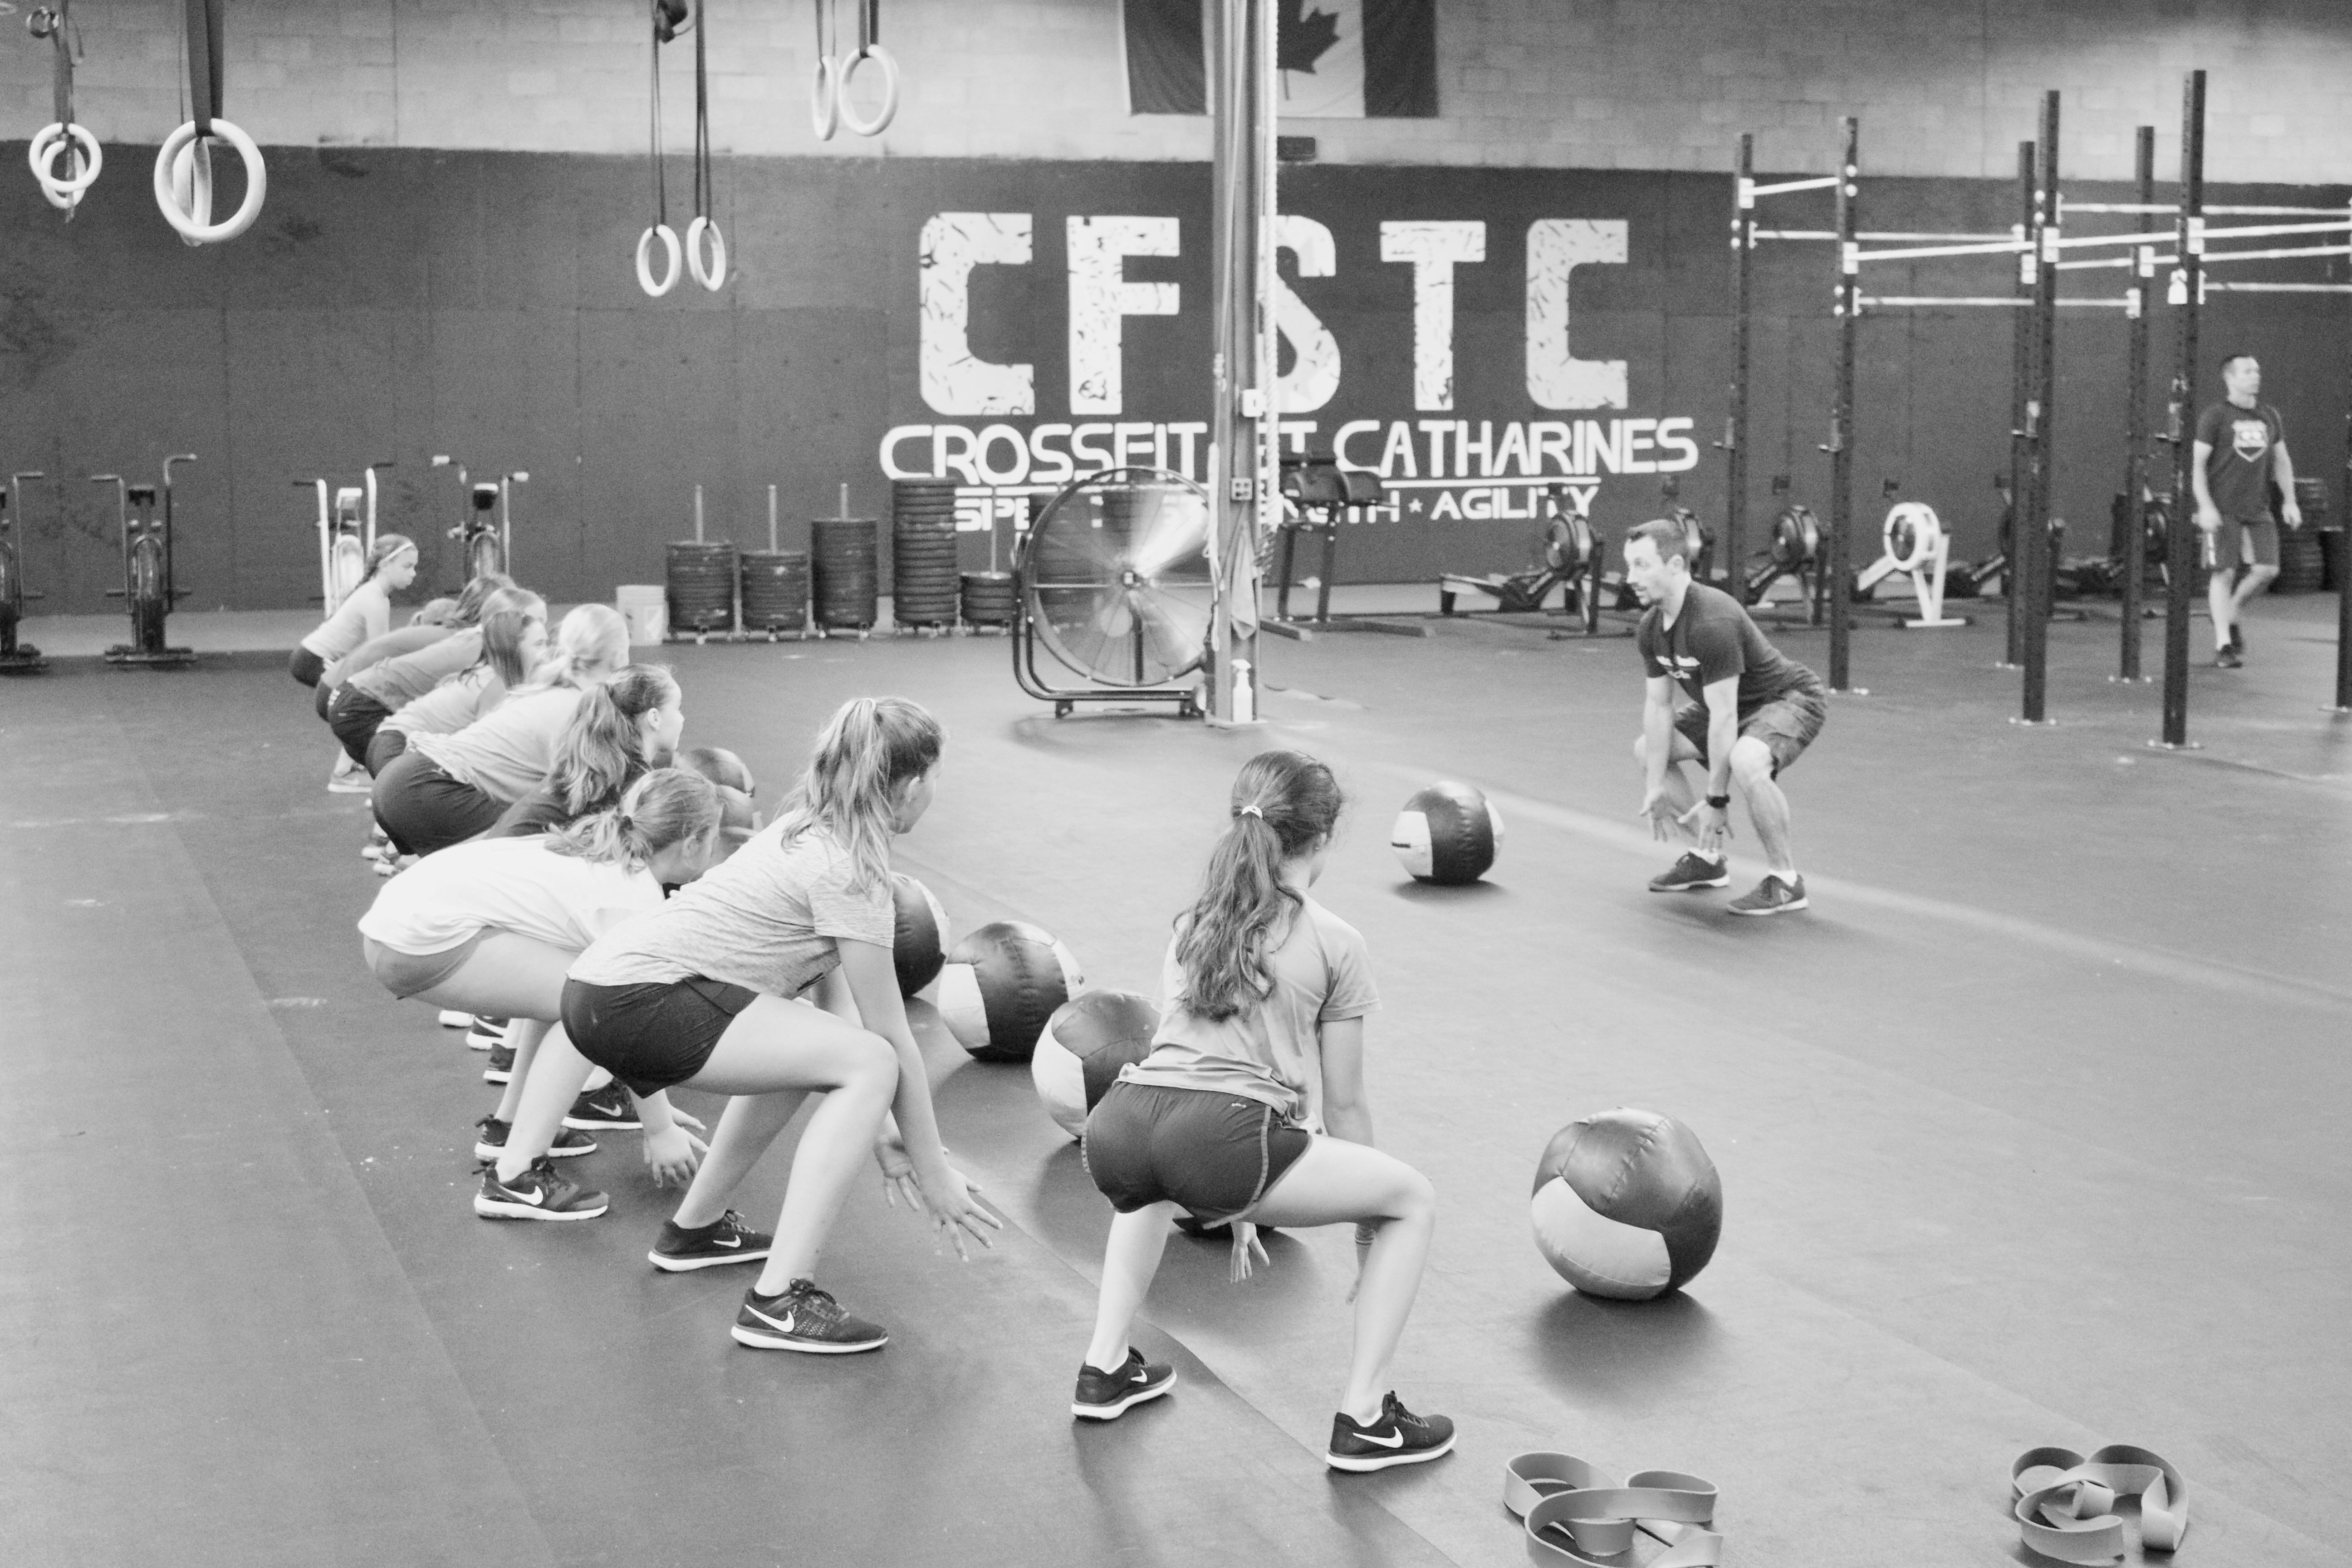 Kids Fitness, Crossfit St. Catharines, Niagara